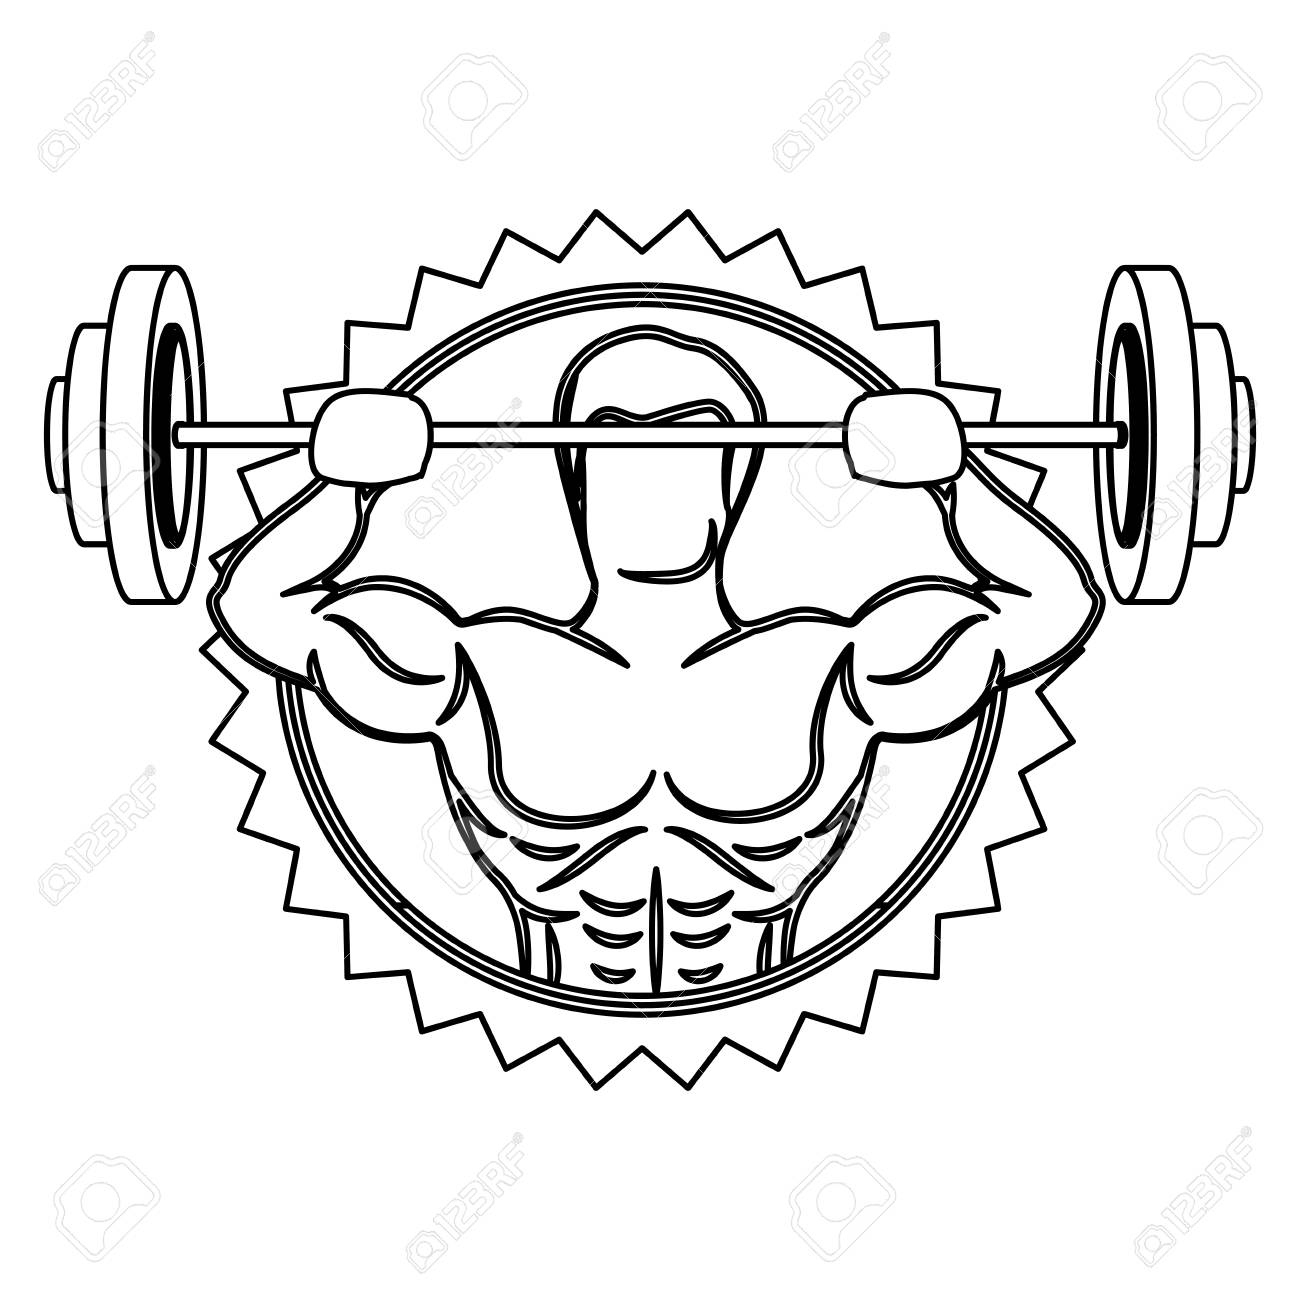 Contour Stamp Border With Muscle Man Lifting A Disc Weights Vector Illustration Stock